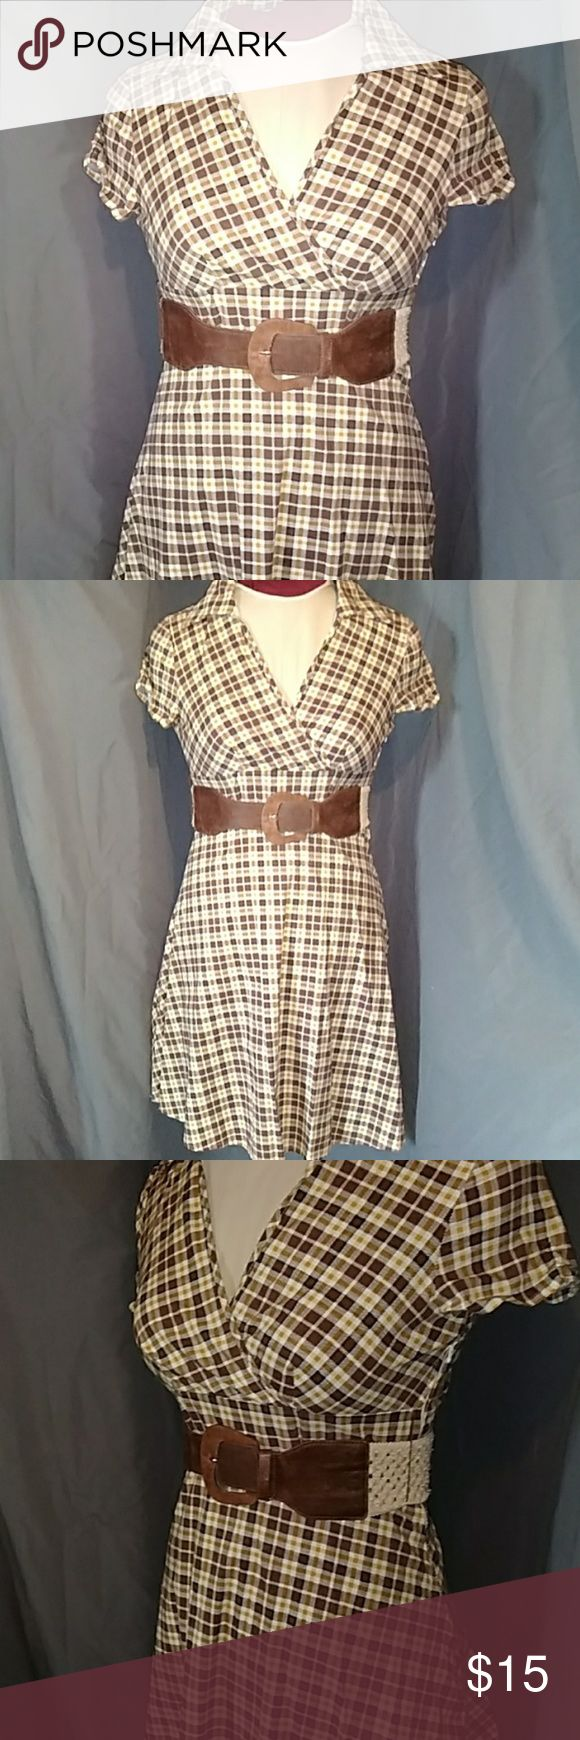 Body central 👗 Brown and tan plaid, short sleeves, low cut v neck, knee length, enter of dress is a brown suede buckle with a cream colored lace elastic band Body Central Dresses Midi